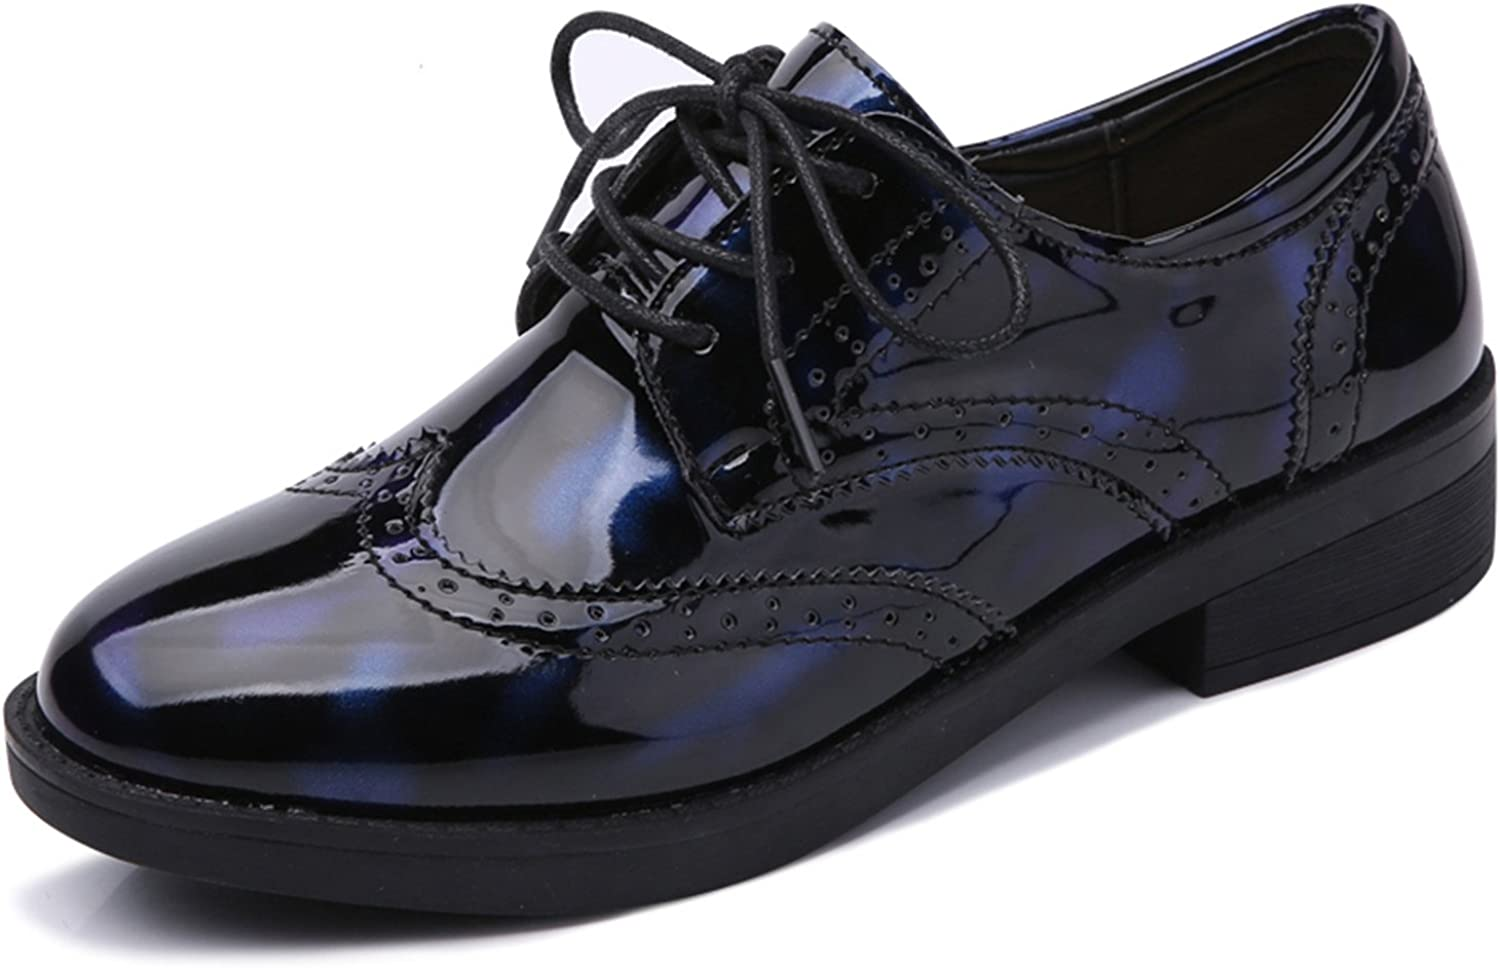 Mandaartins Women Oxford shoes Leather Glossy shoes Carved Lace-up Flat shoes